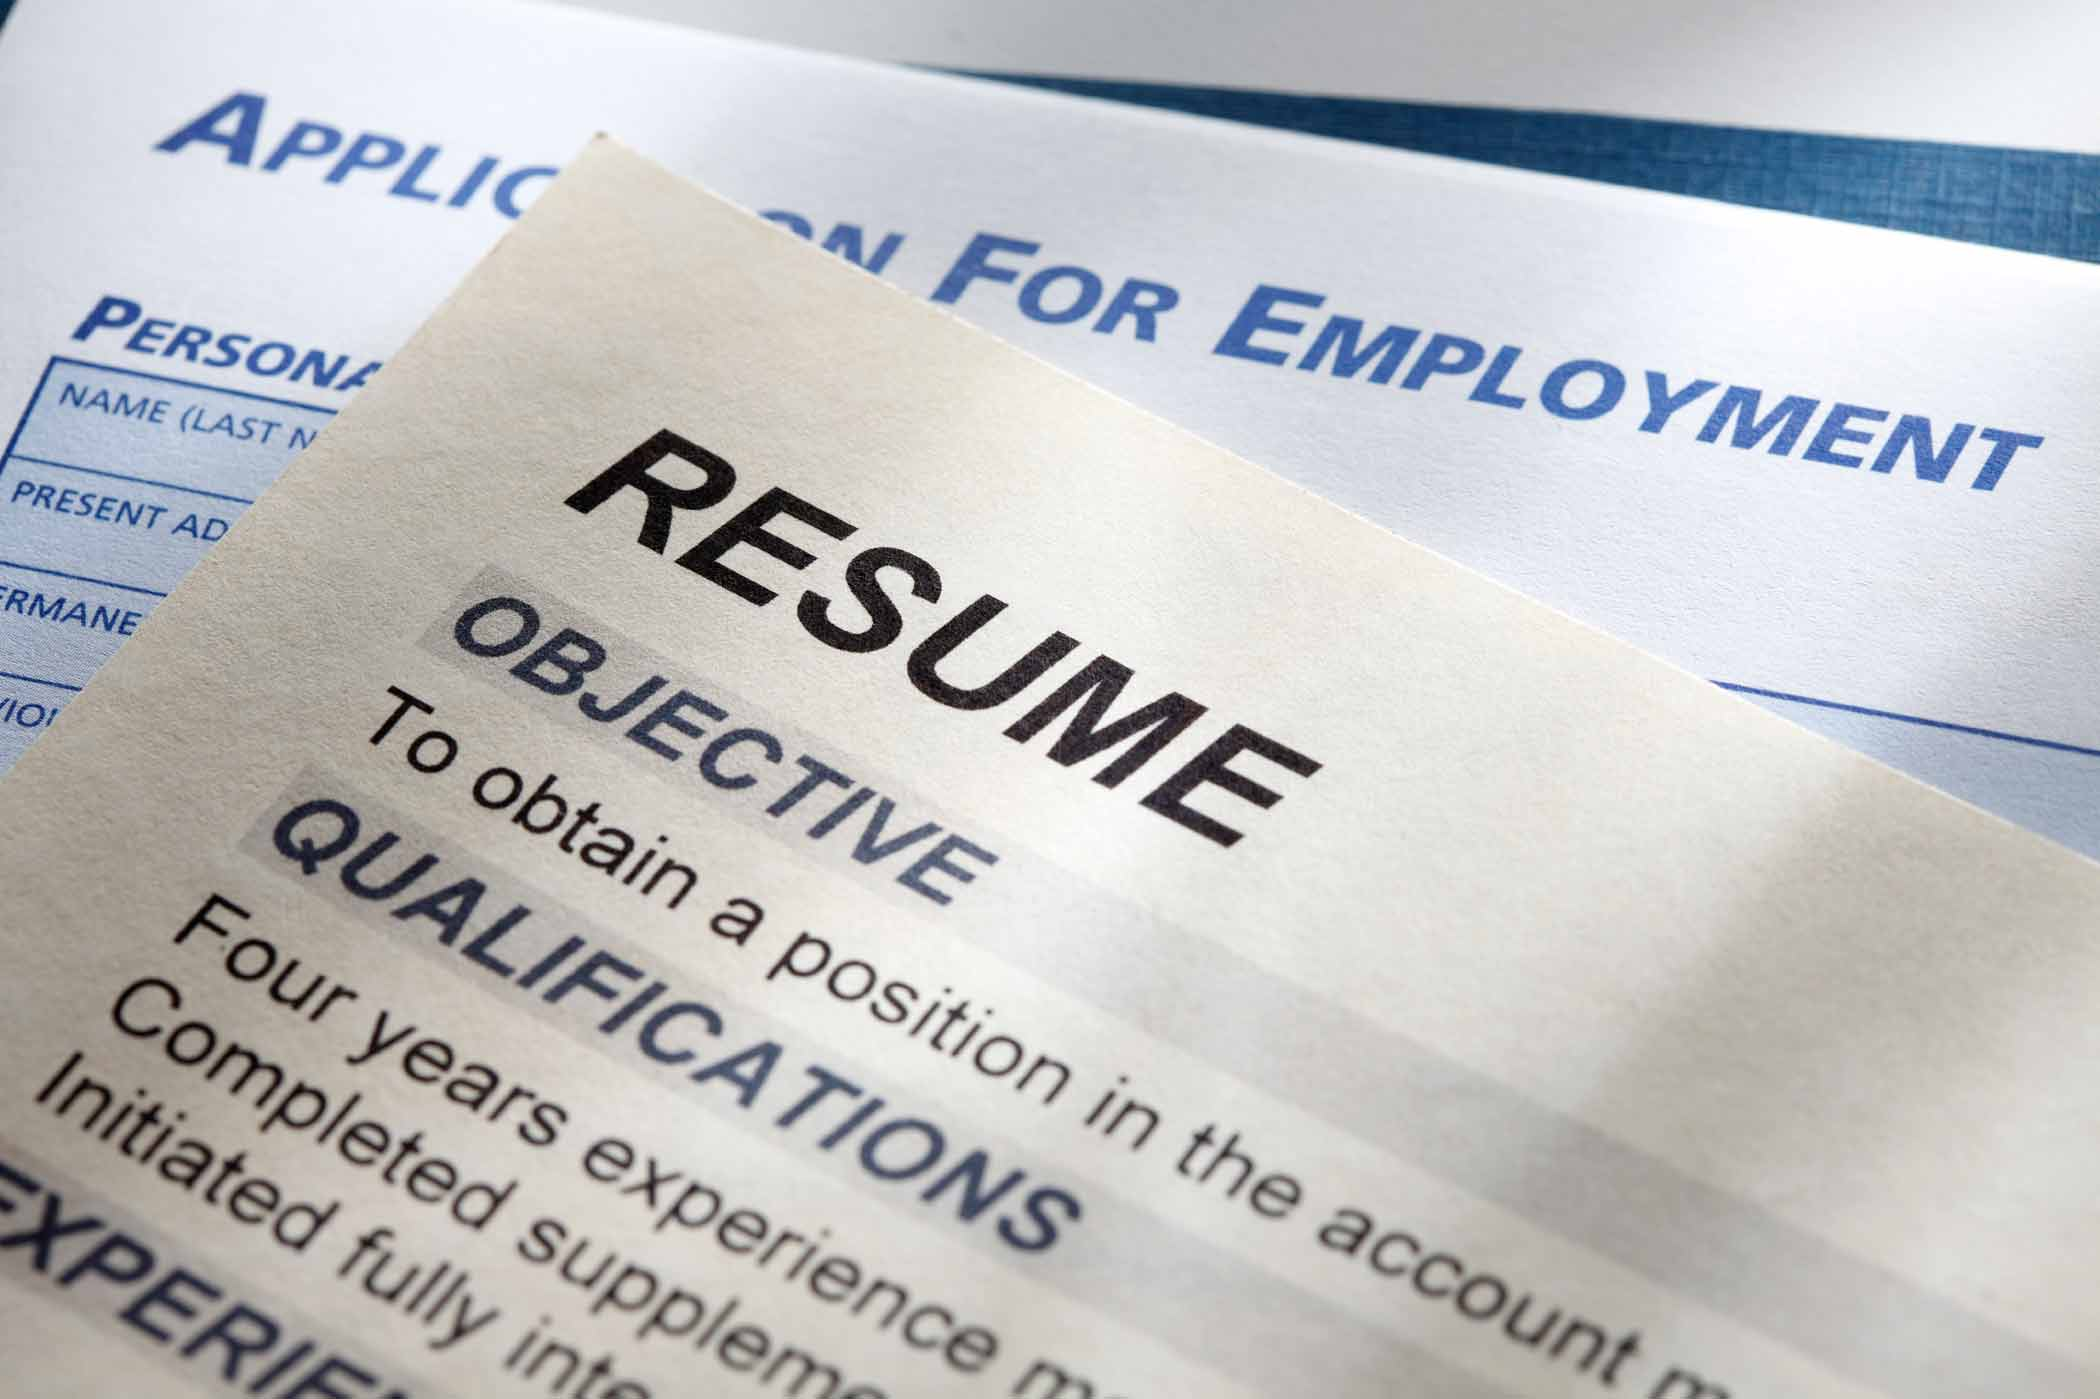 Resume Writers Online online resume writers cv after cv resume writer skills experience writing editing online resume editor Resume Writers Jobs Few Thoughts On Good Resume Writing Something Resume